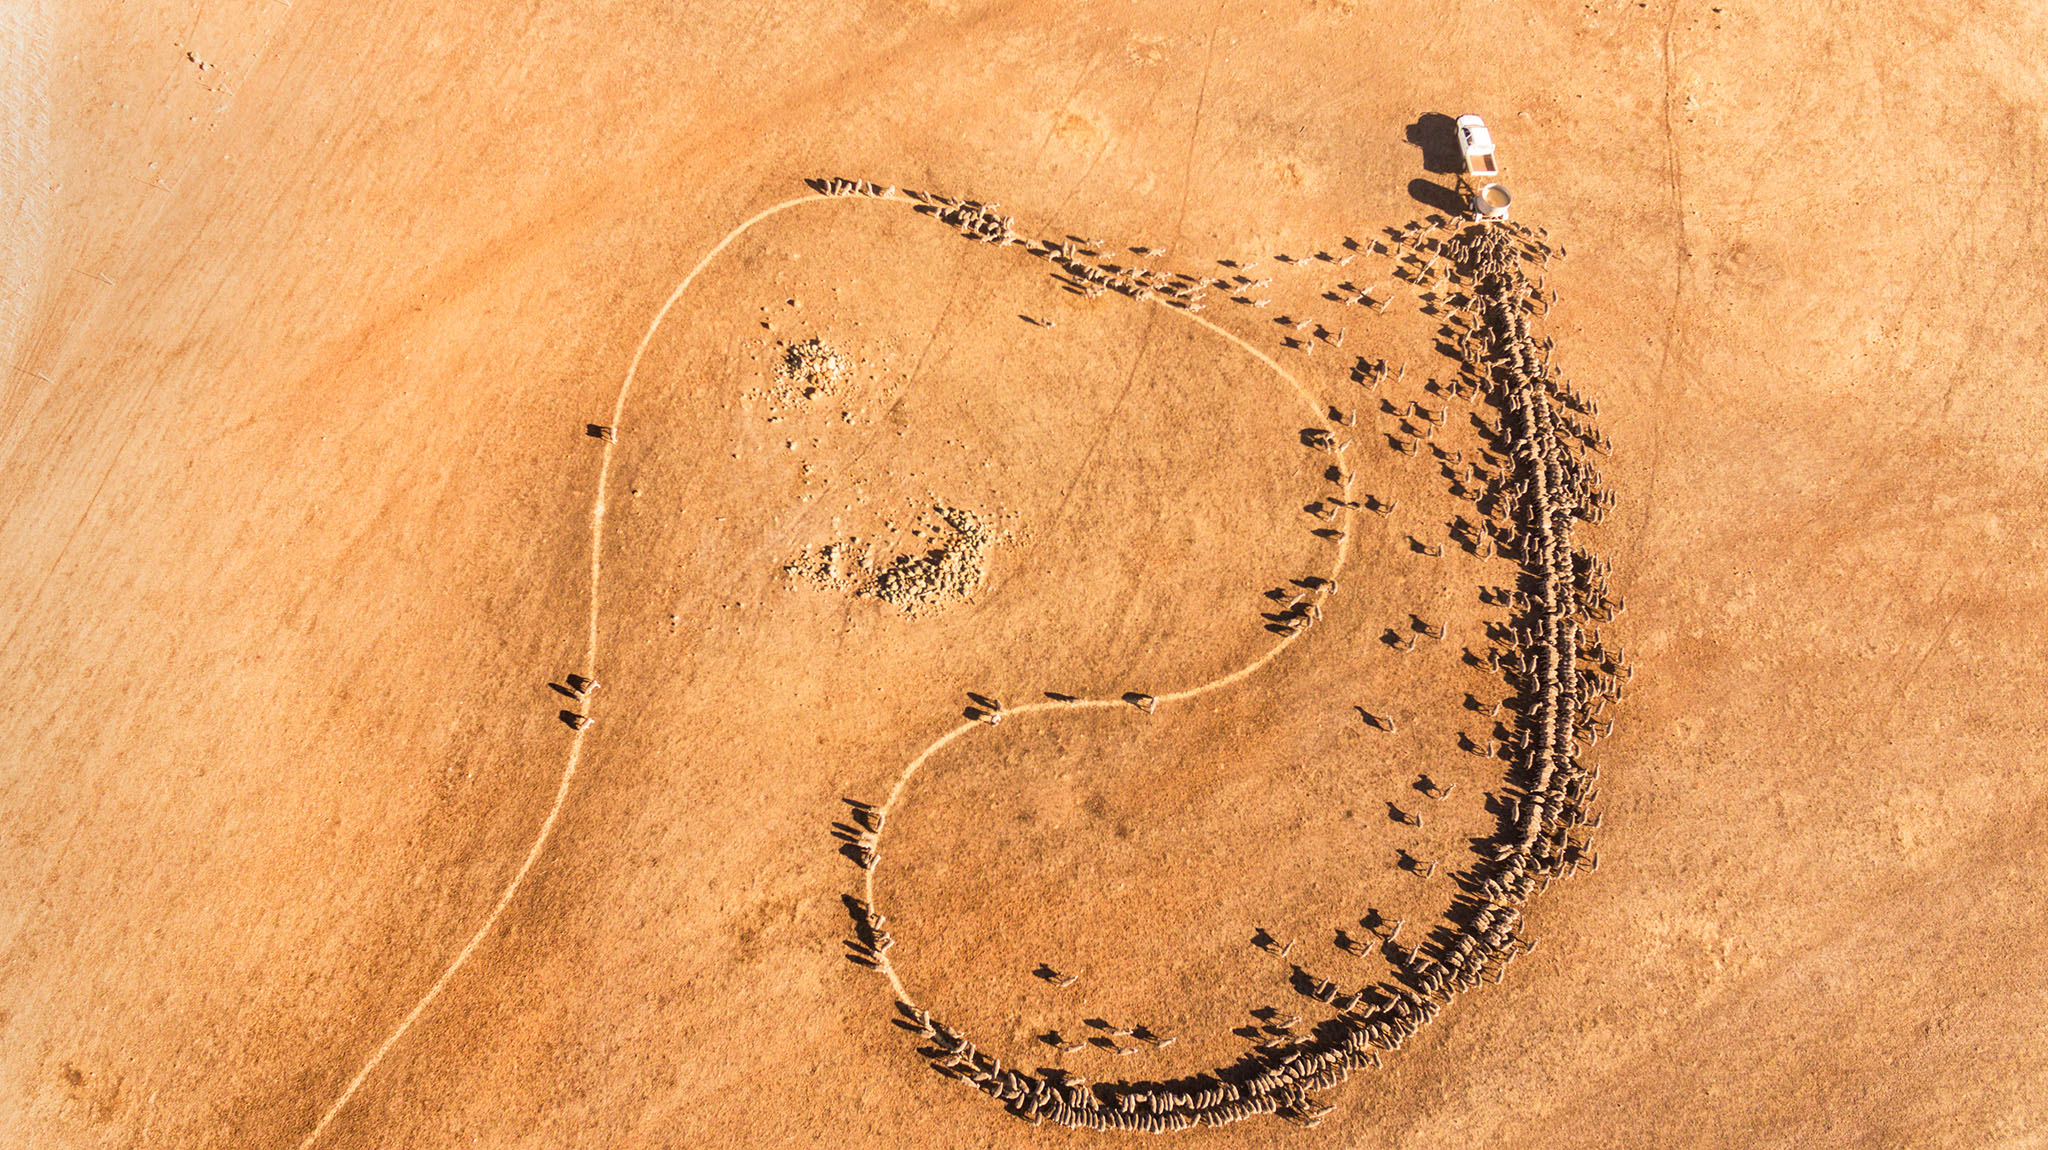 Aerial photo showing the trail of grain fed out to sheep creating a sinuous line through a dry brown landscape